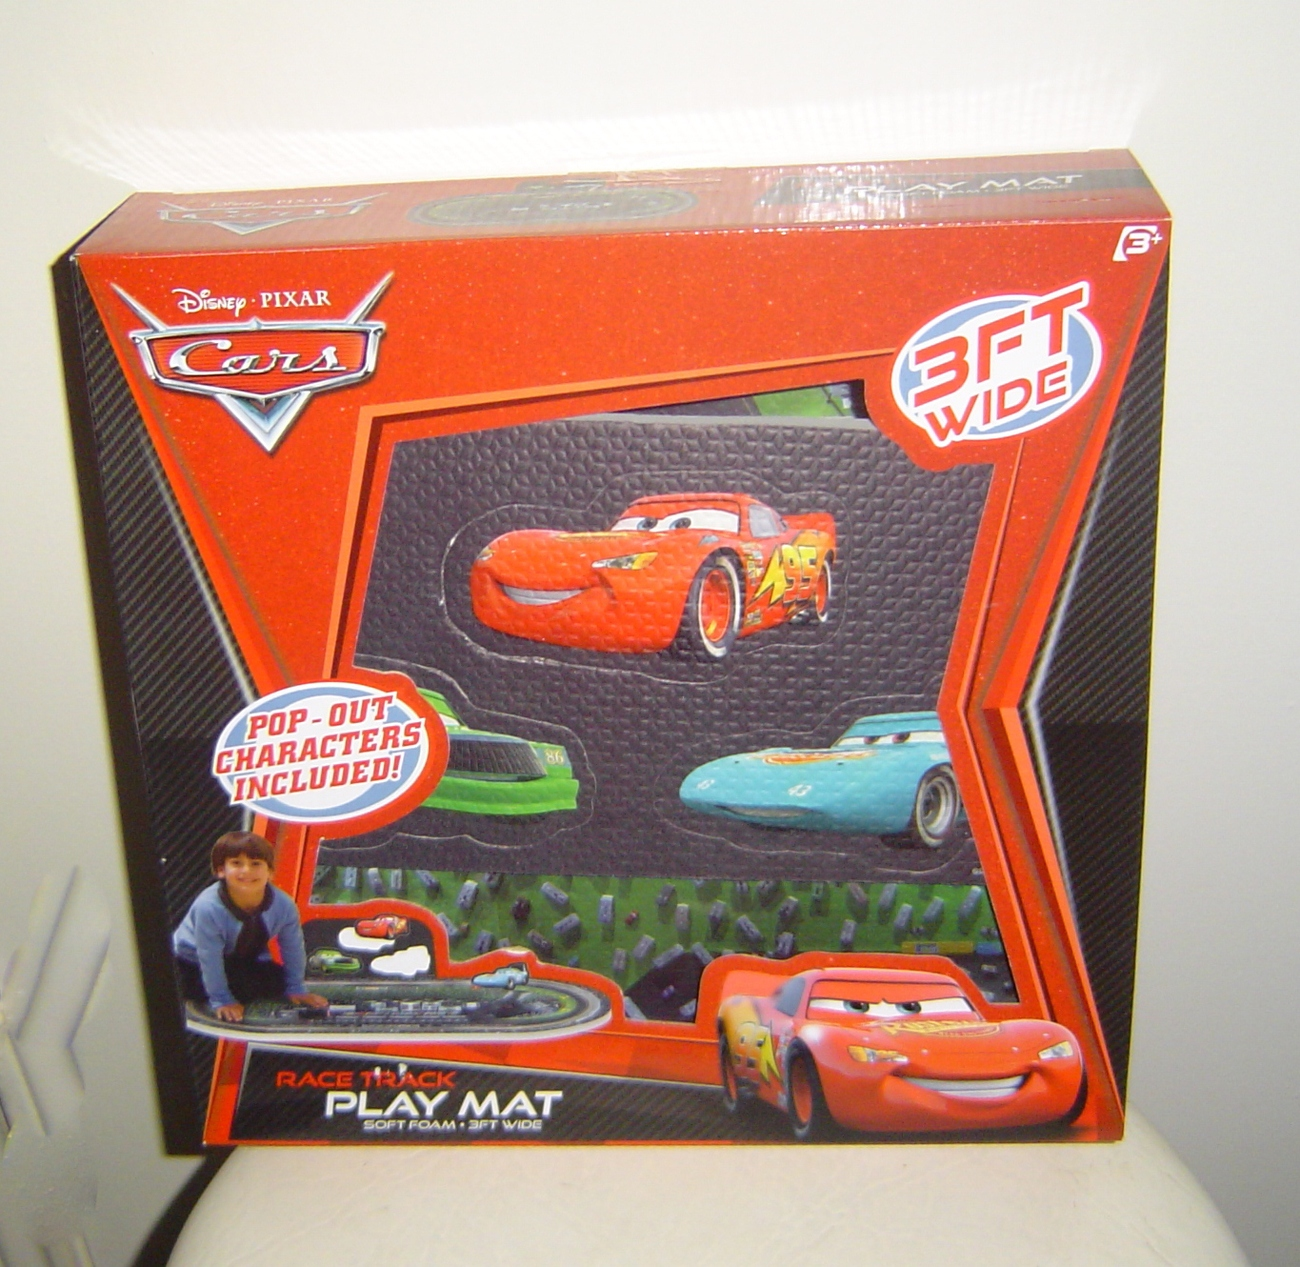 Disney Pixar Cars Race Track Play Floor Mat With Pop Out